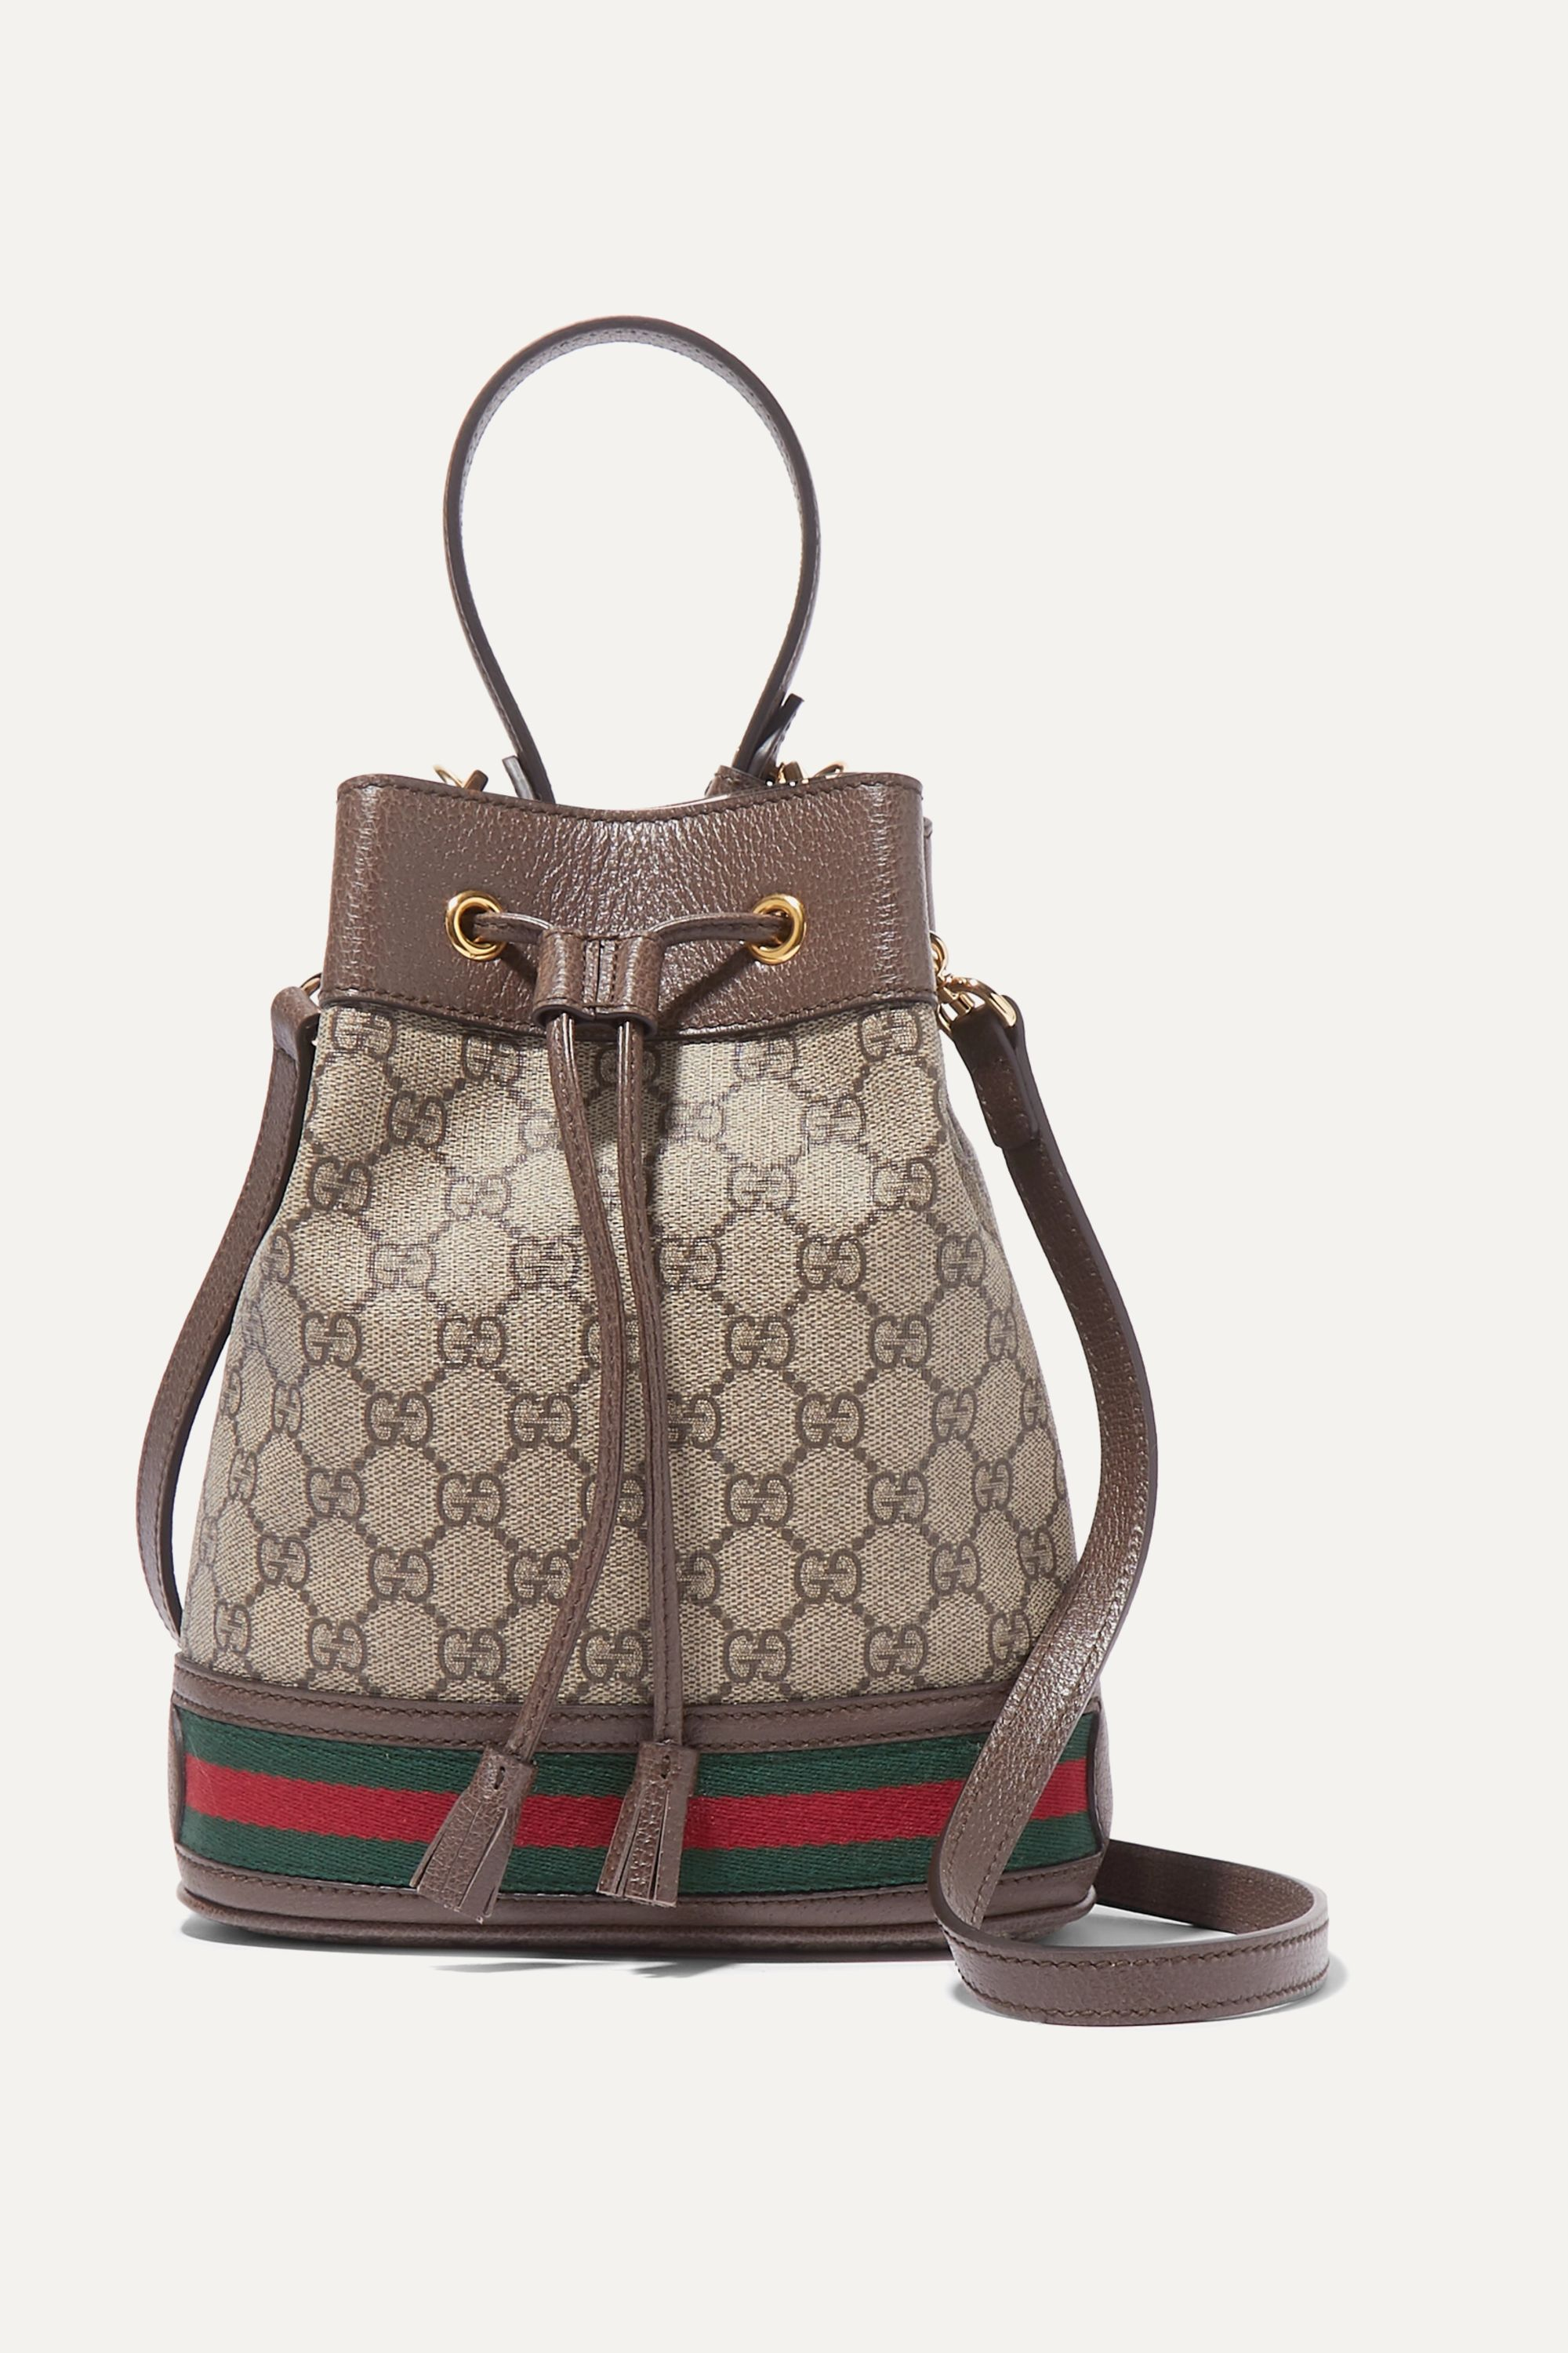 Gucci Ophidia small textured leather-trimmed printed coated-canvas bucket bag